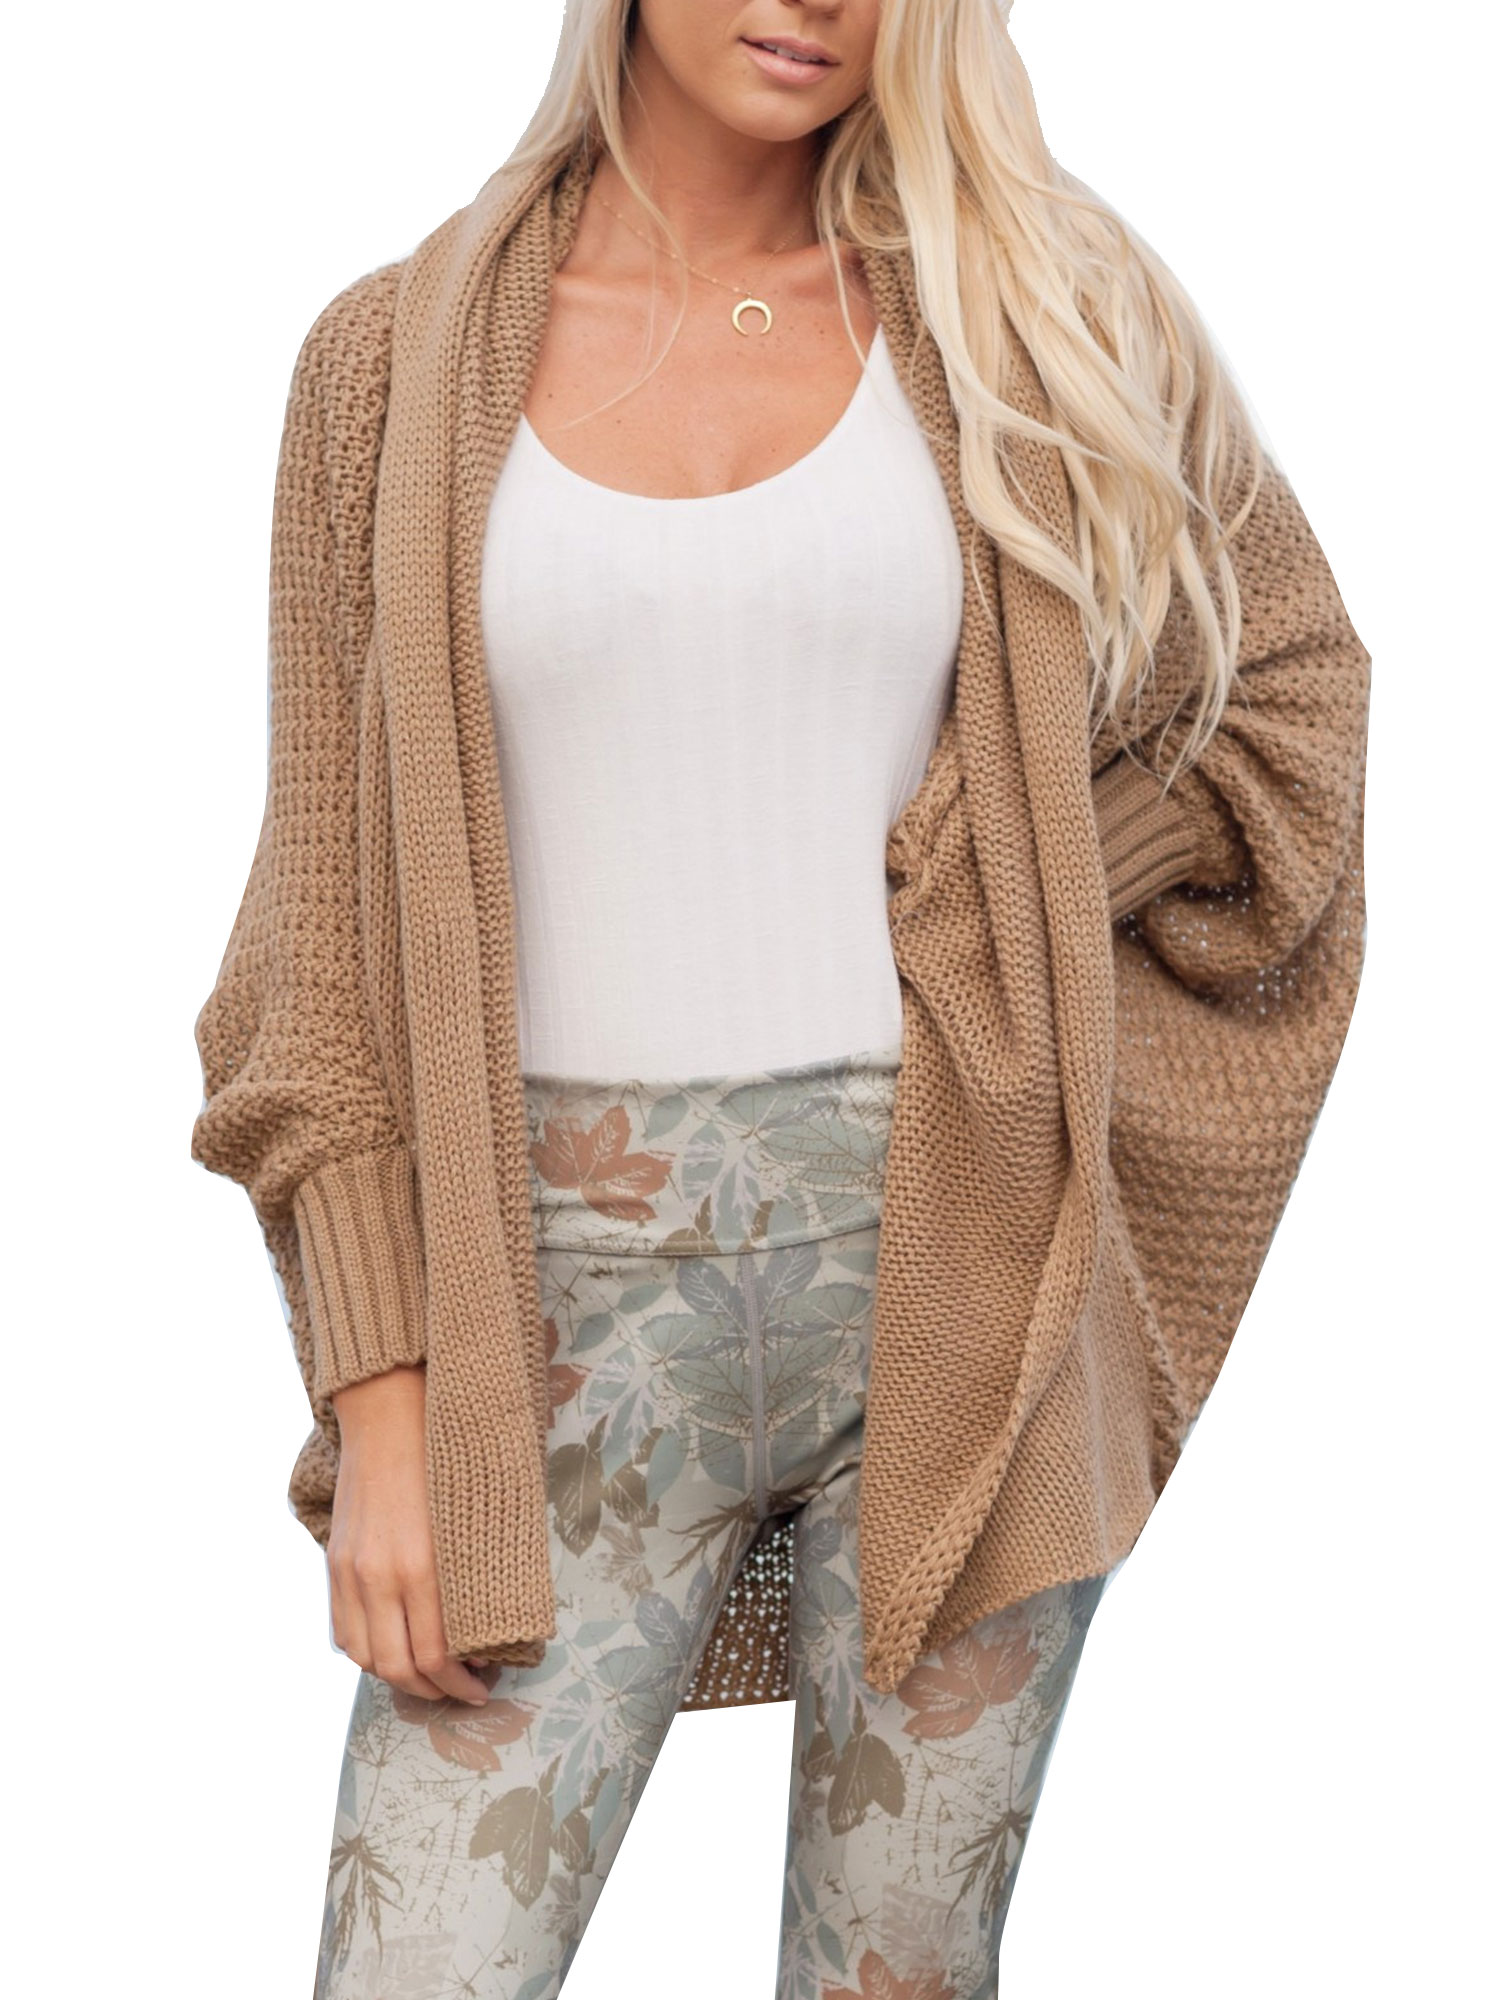 Women Winter Baggy Cardigan Coat Top Chunky Knitted Batwing Sleeve  Oversized Sweater Jumper Loose Open Front